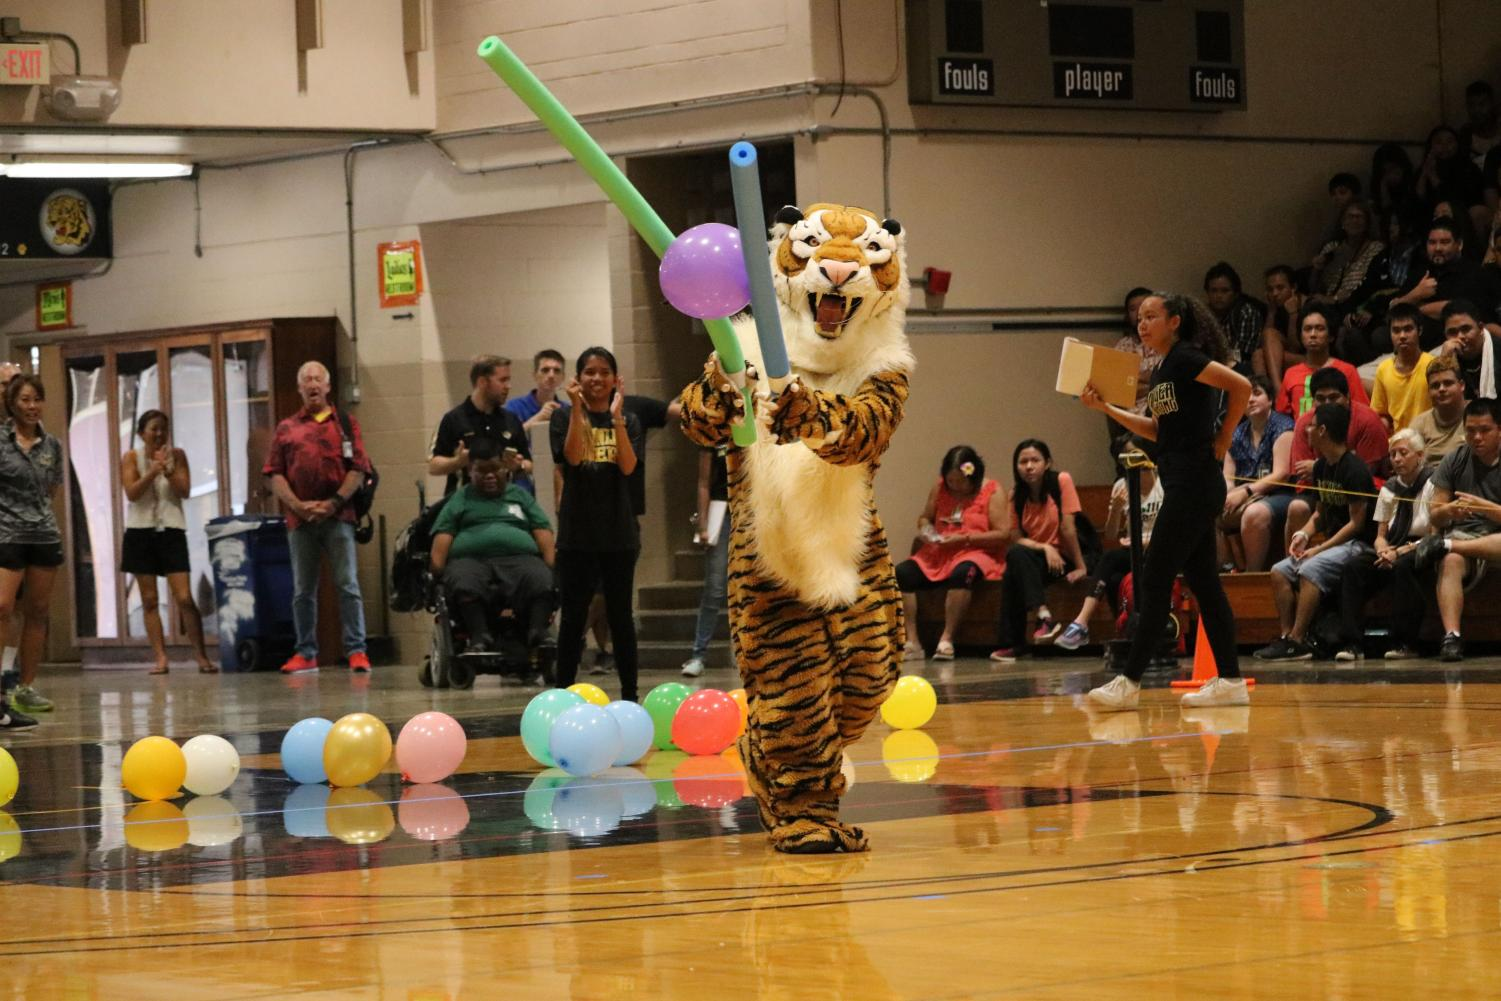 MHS+teachers%2C+Mr.+Kamida+got+the+pleasure+of+wearing+the+entire+tiger+mascot+during+the+game.+%0Aphoto+by+Sabrina+Williams